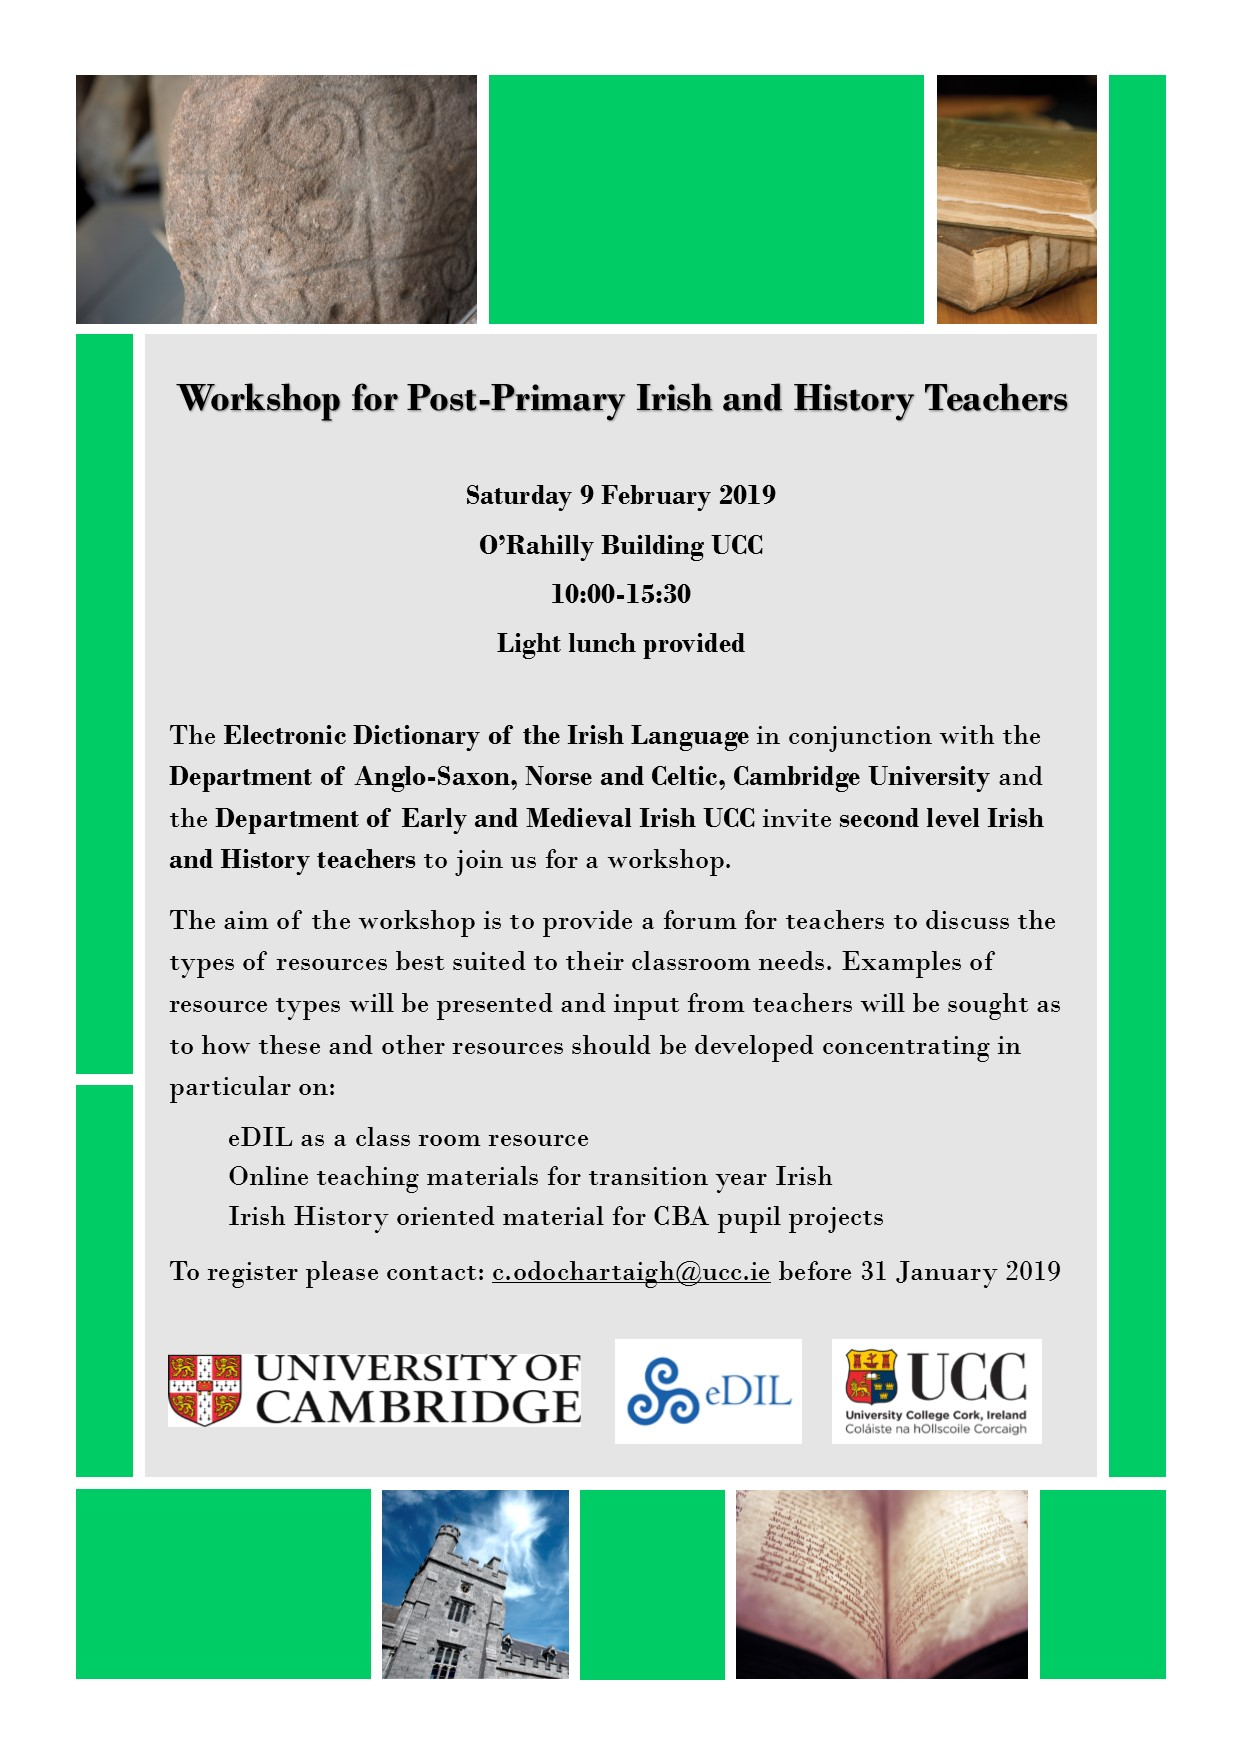 Workshop for Post-Primary Irish and History Teachers